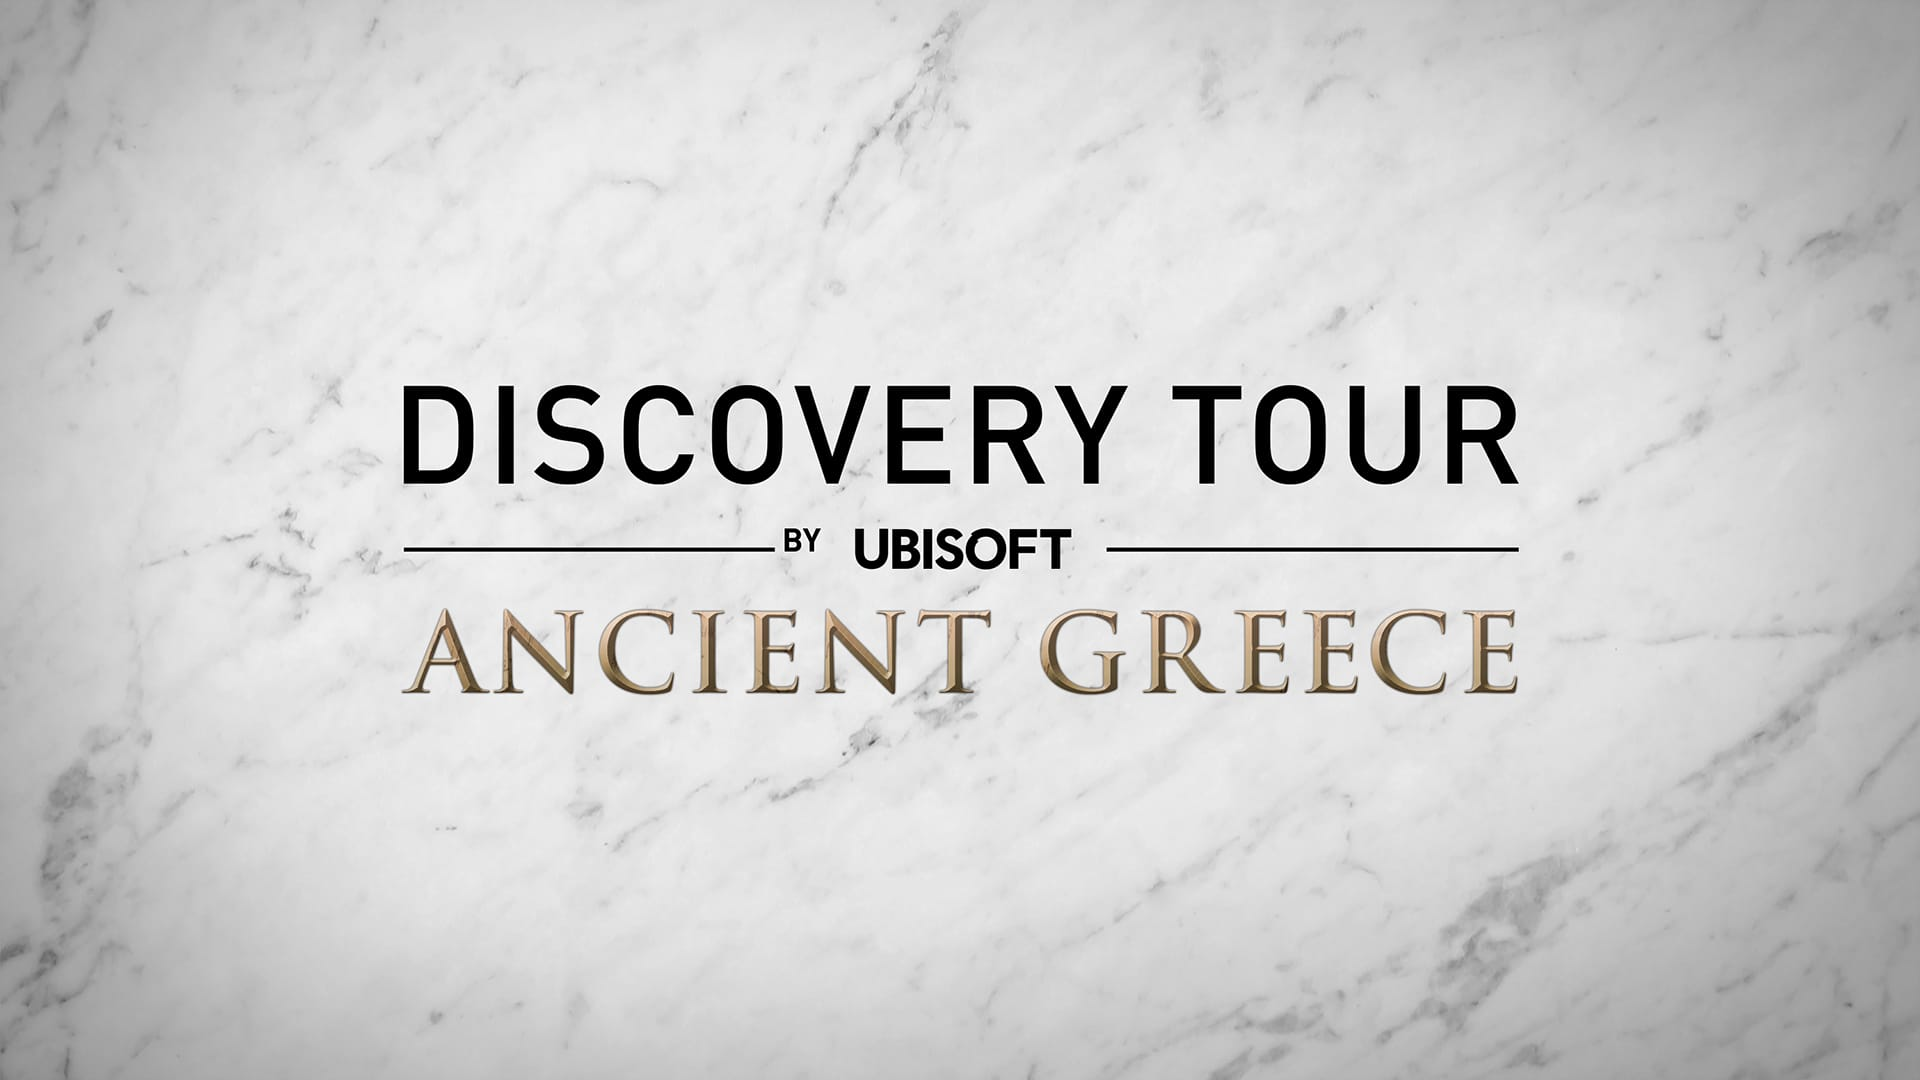 Discovery Tour by Ubisoft: Ancient Greece